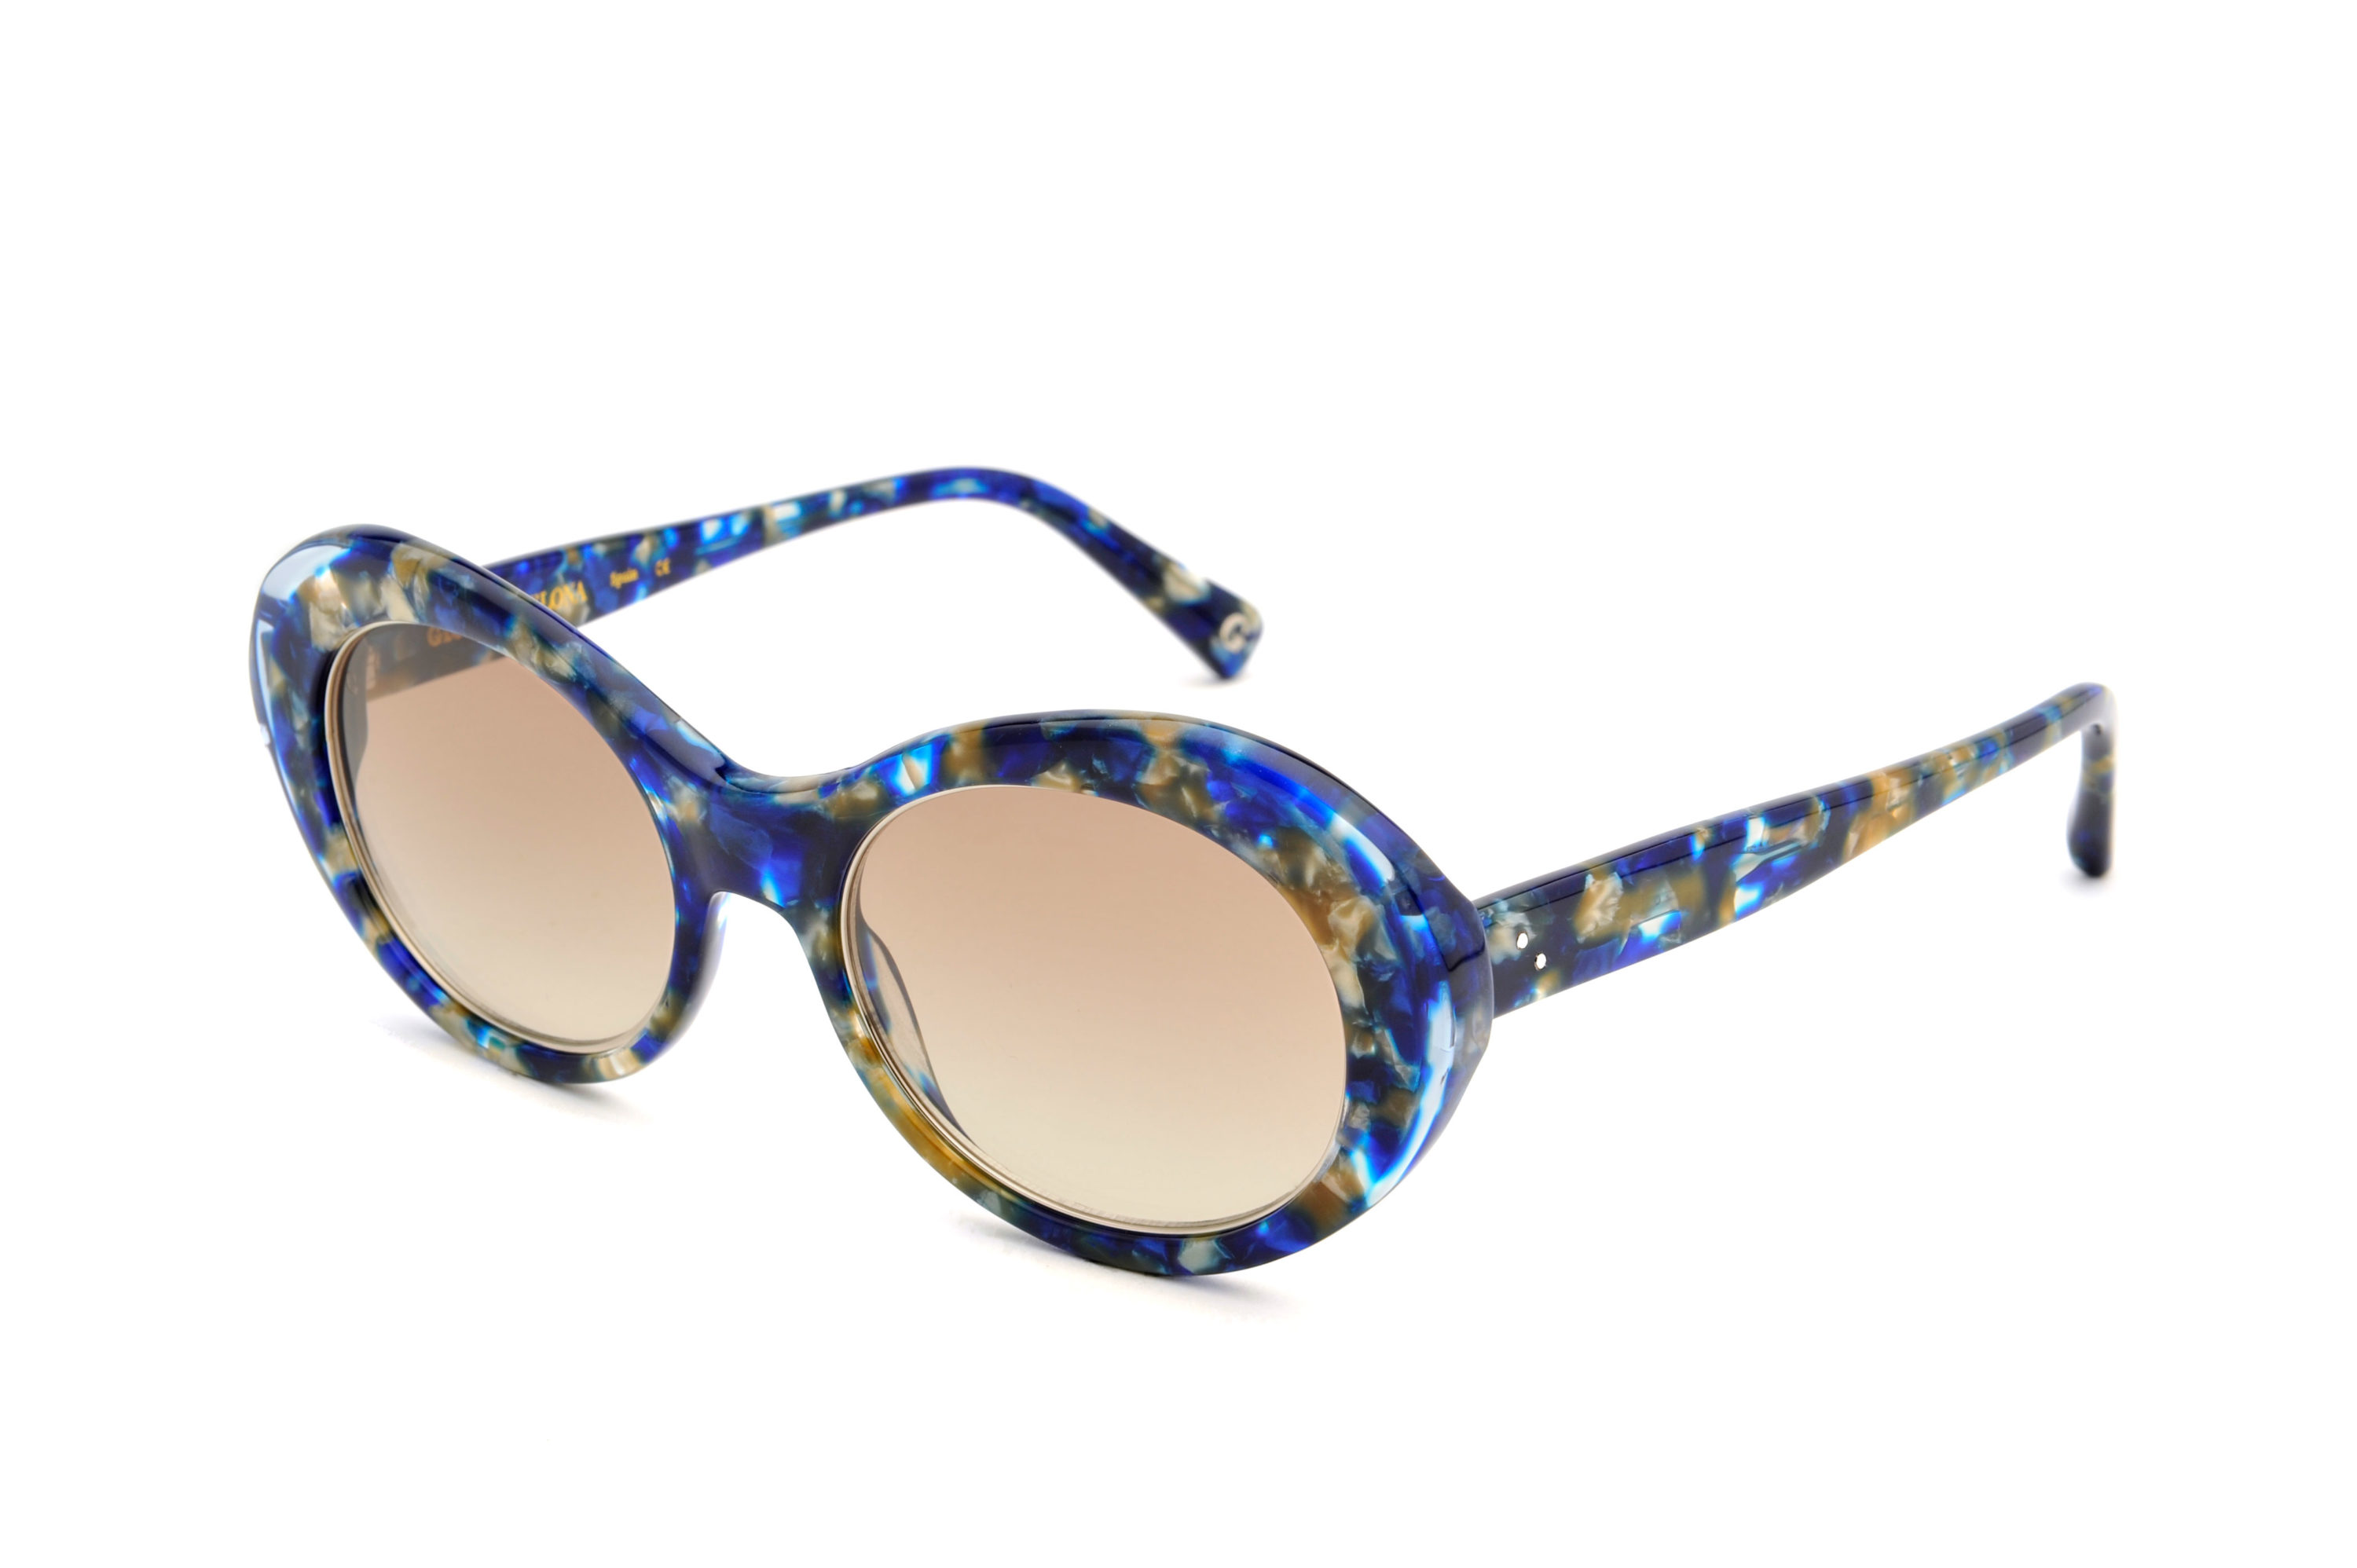 Jade acetate rounded blue sunglasses by GIGI Studios